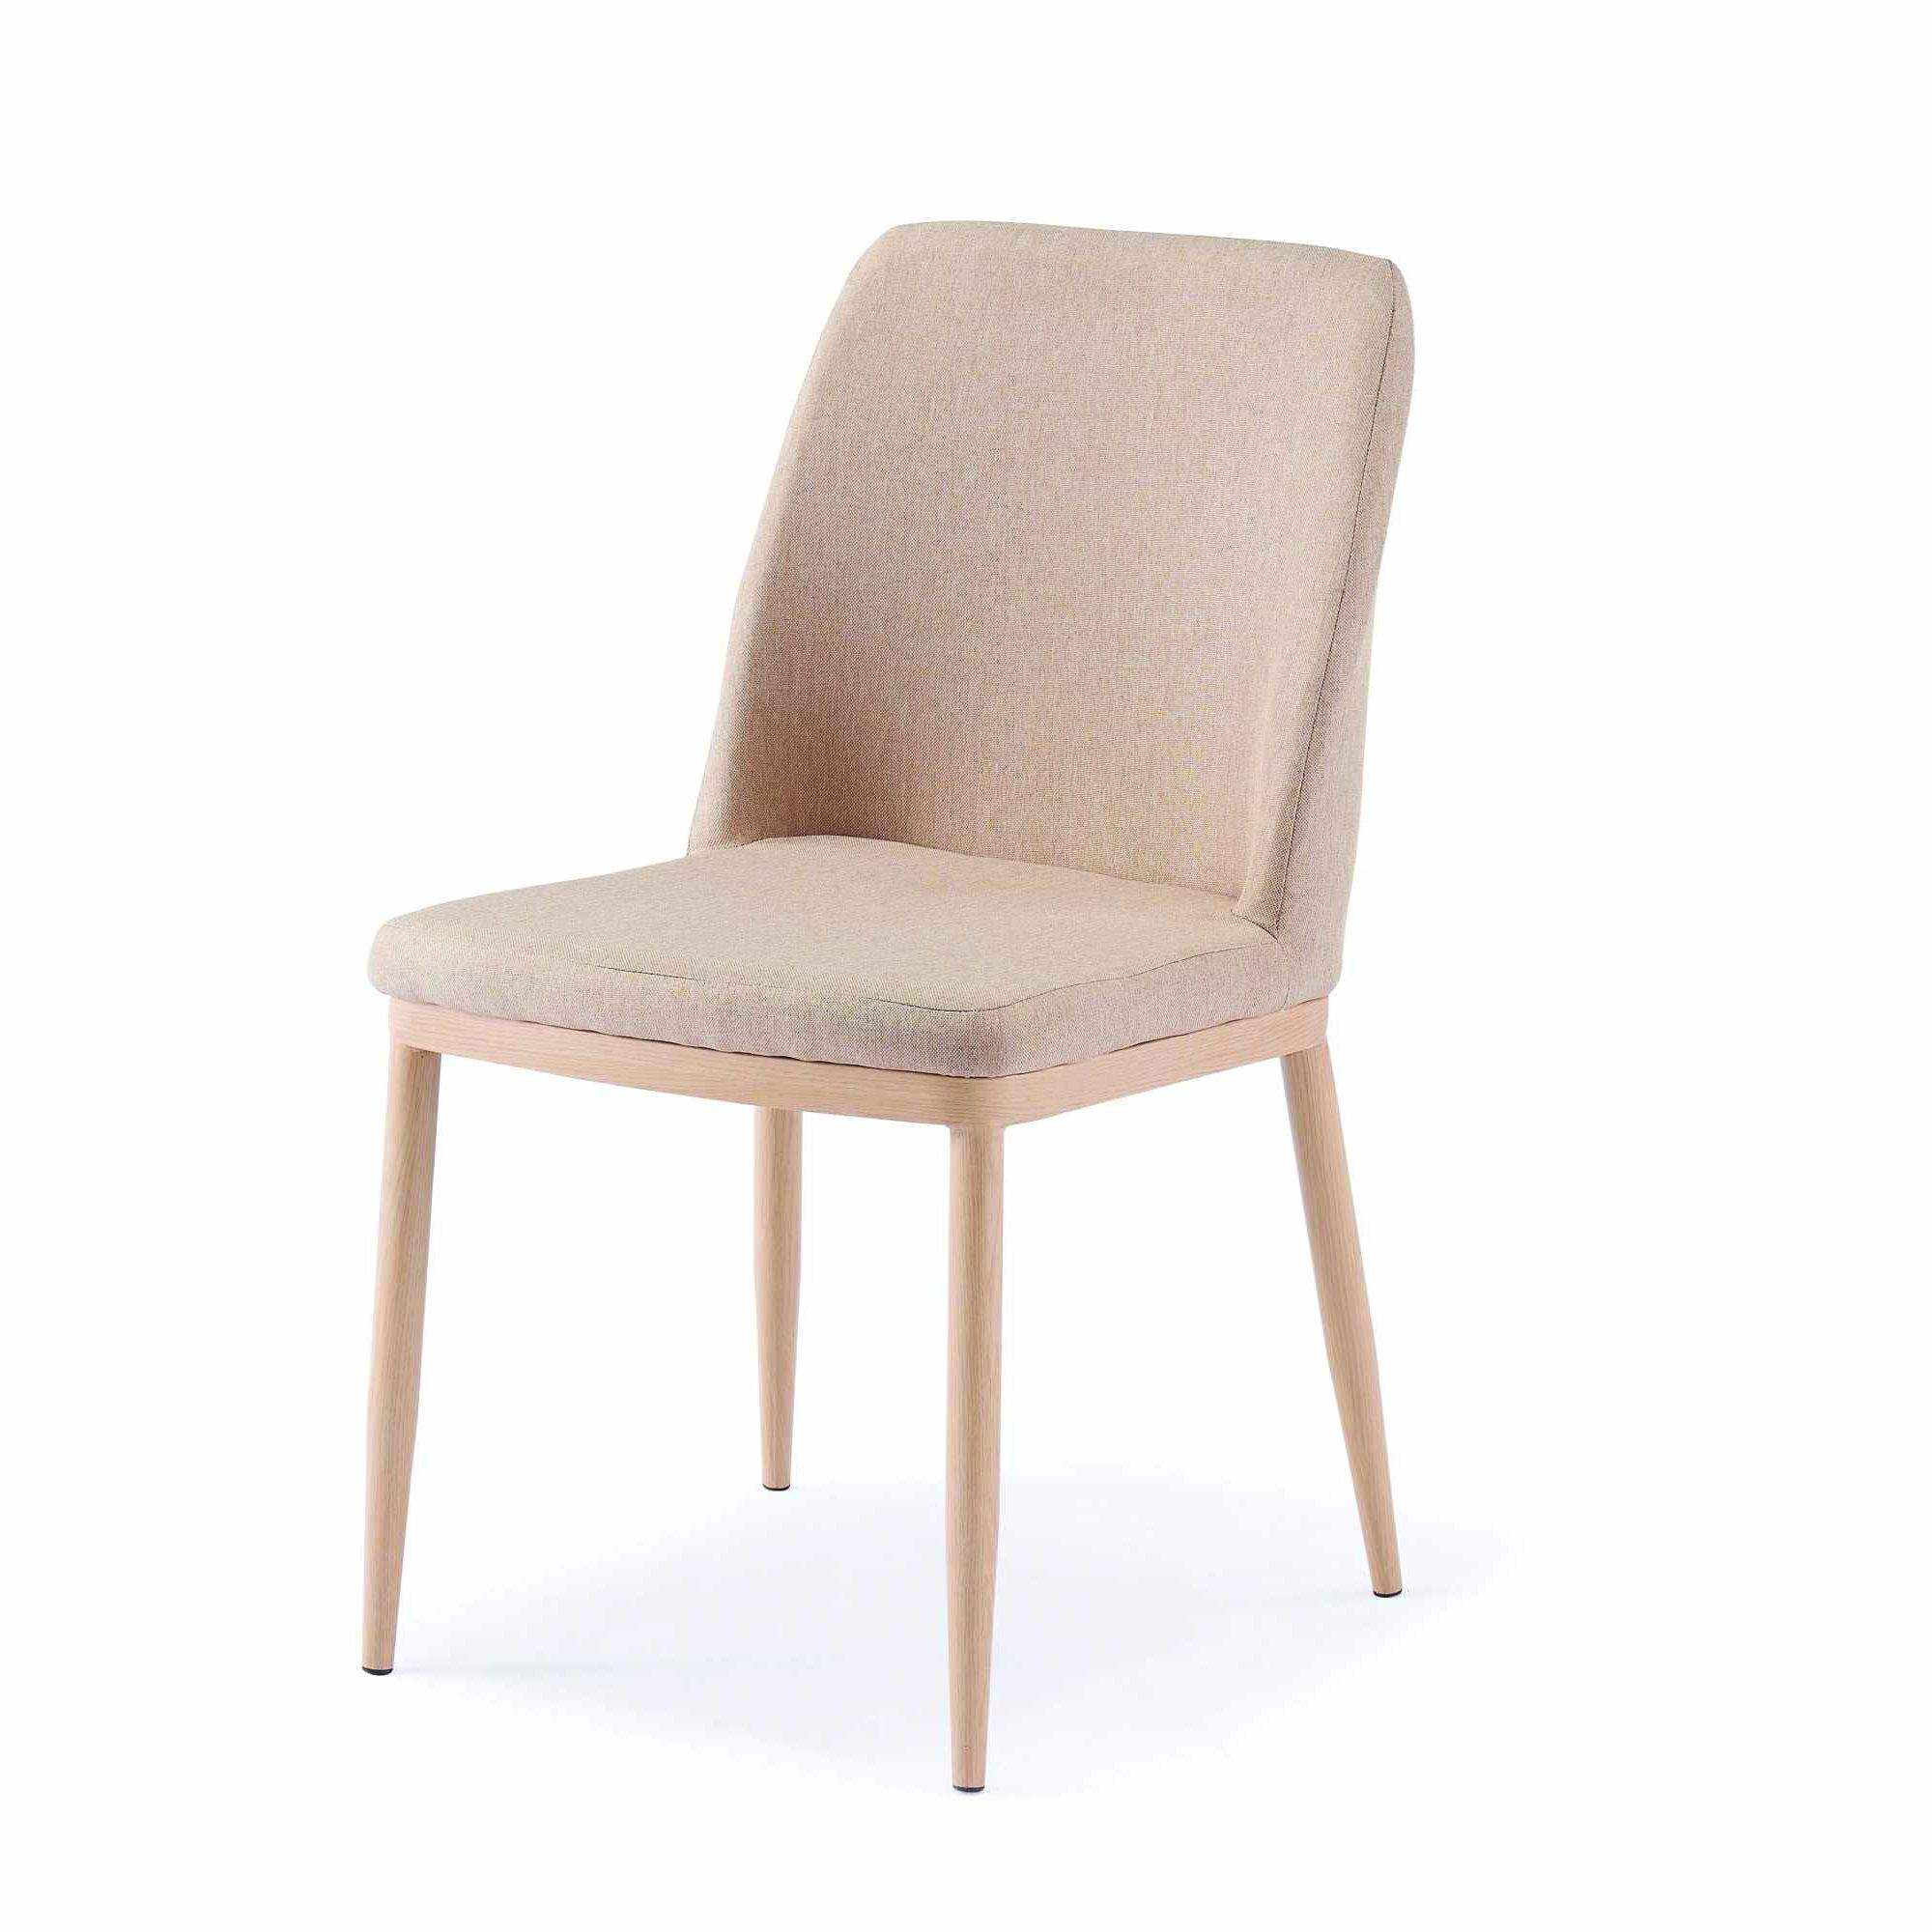 Deco in paris 1 table 4 chaises scandinave yeta yeta for Table chaise scandinave